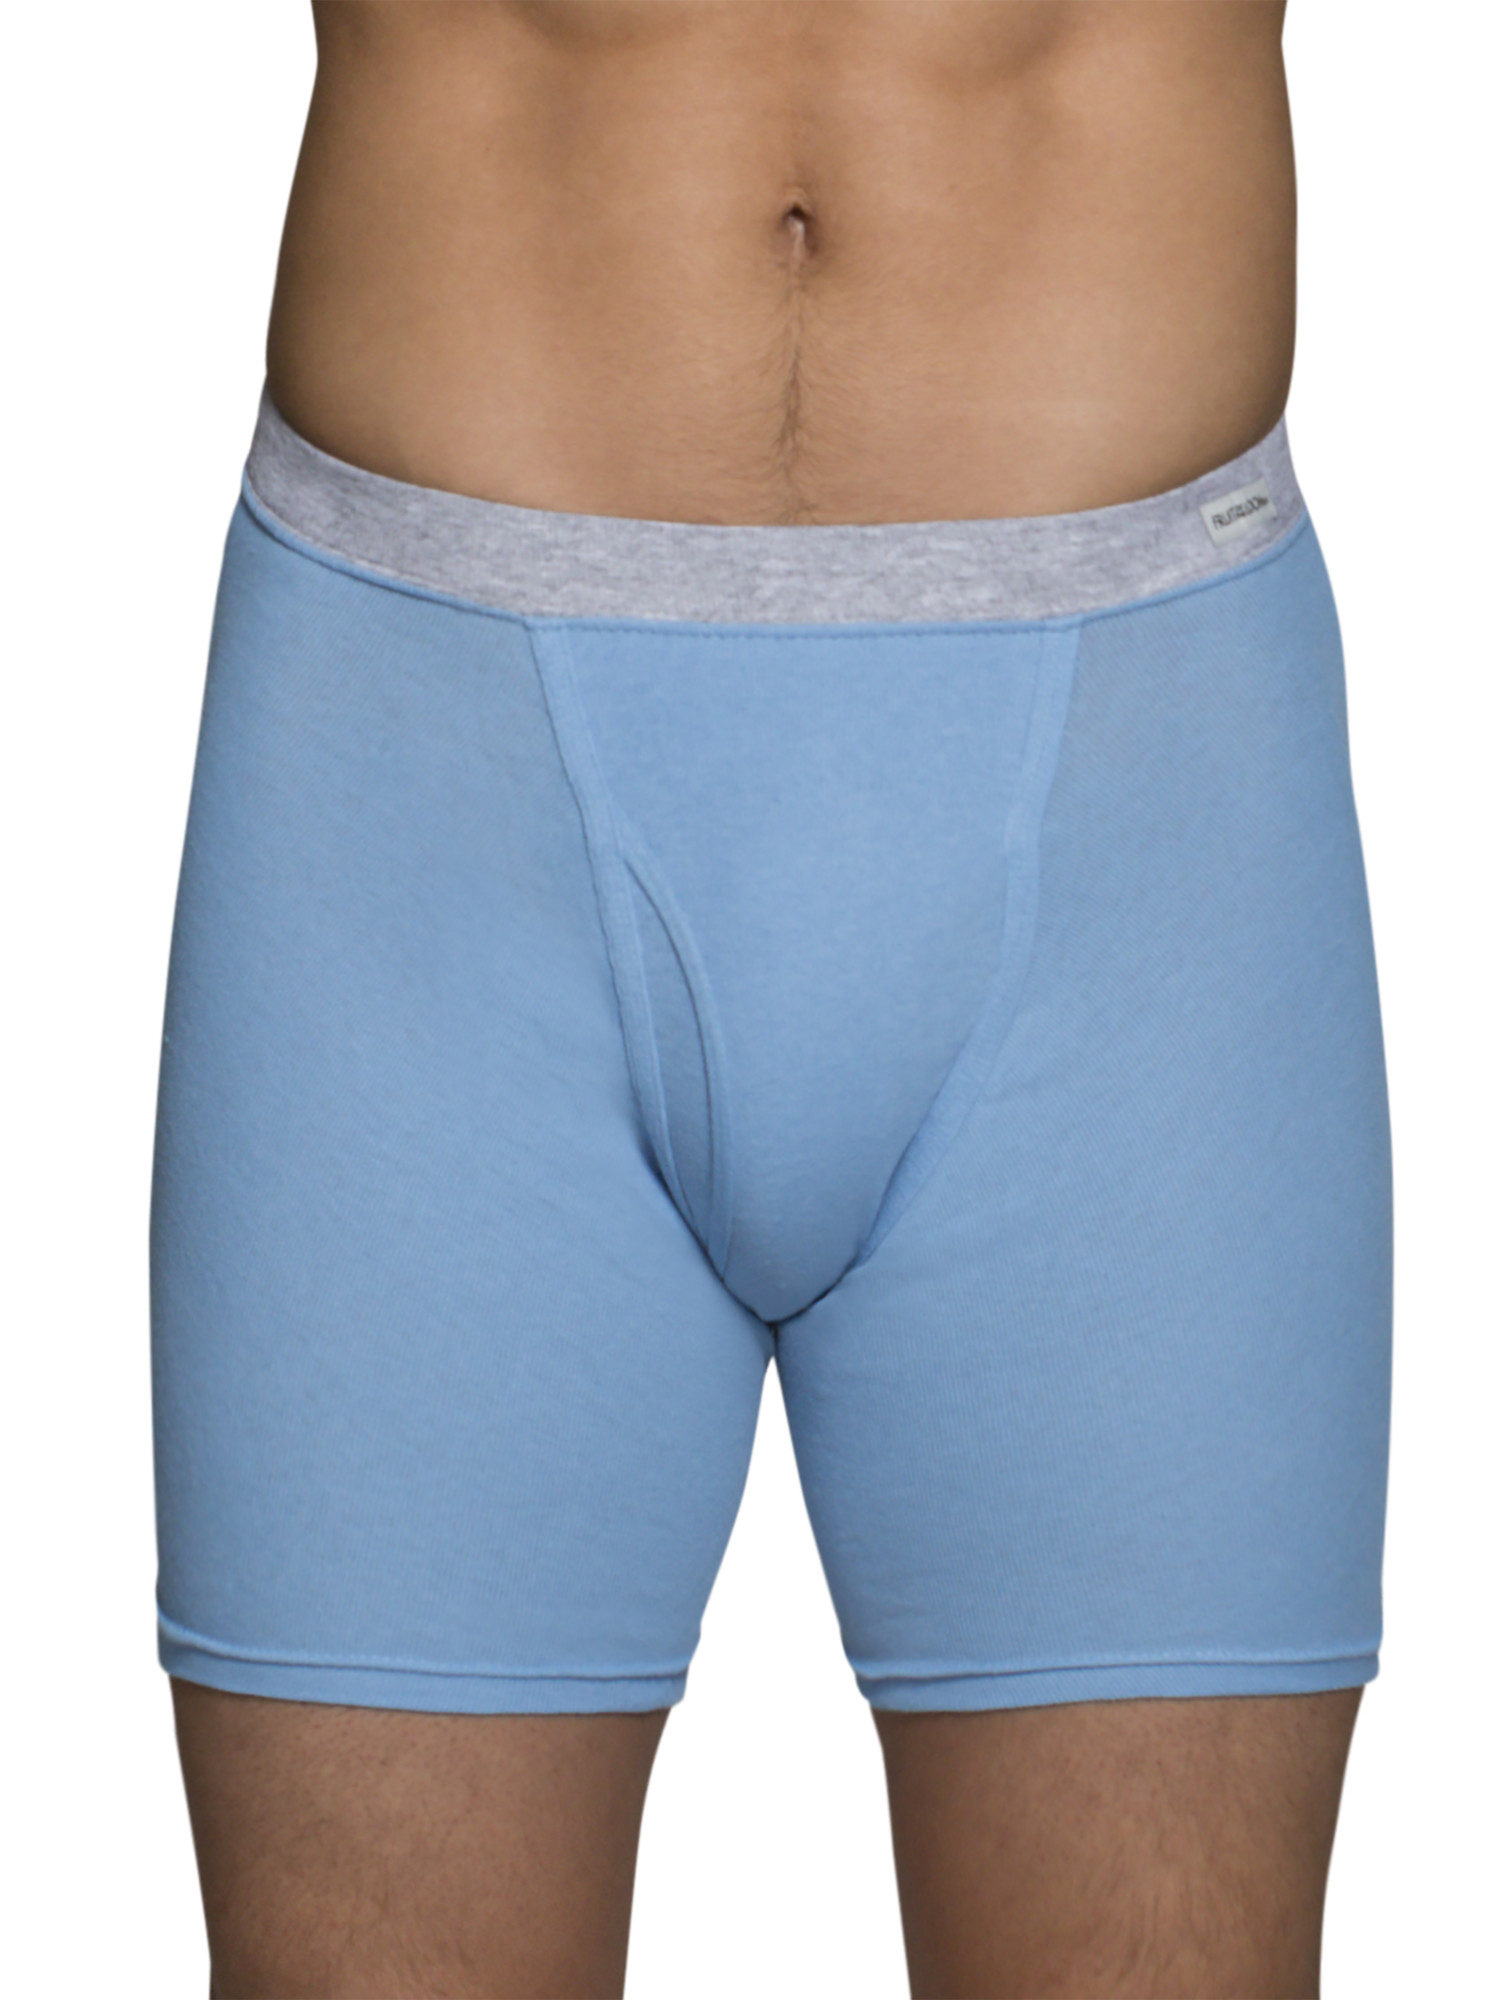 Big Men's Dual Defense Soft Covered Waistband Boxer Briefs Extended Sizes, 4 Pack